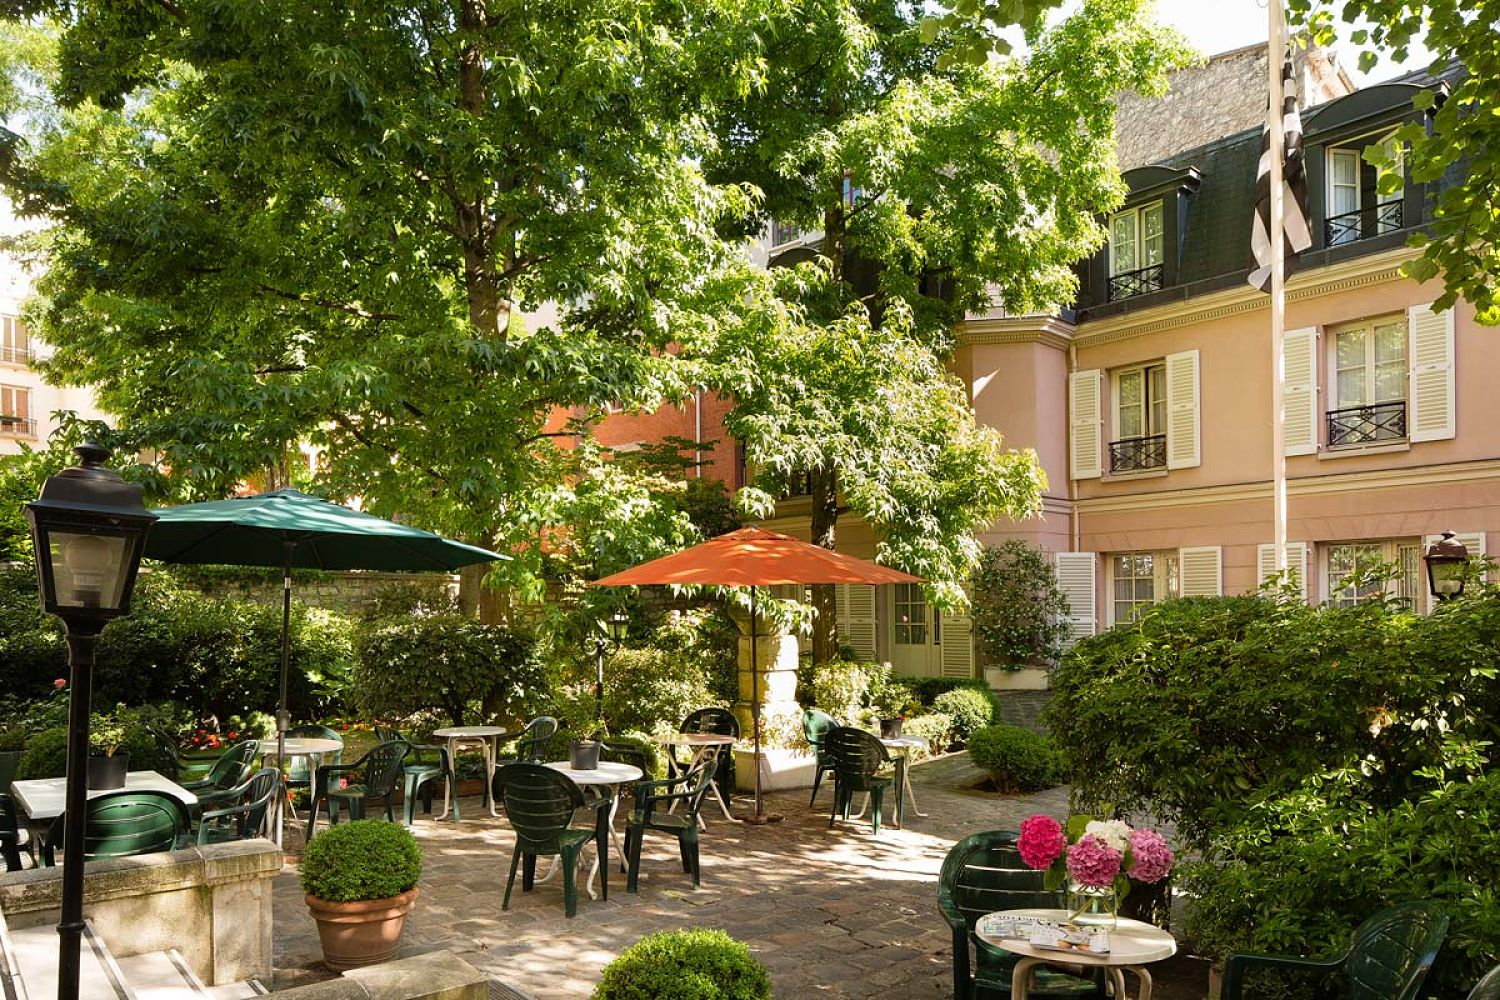 The garden of our hotel in the Latin Quarter in Paris.